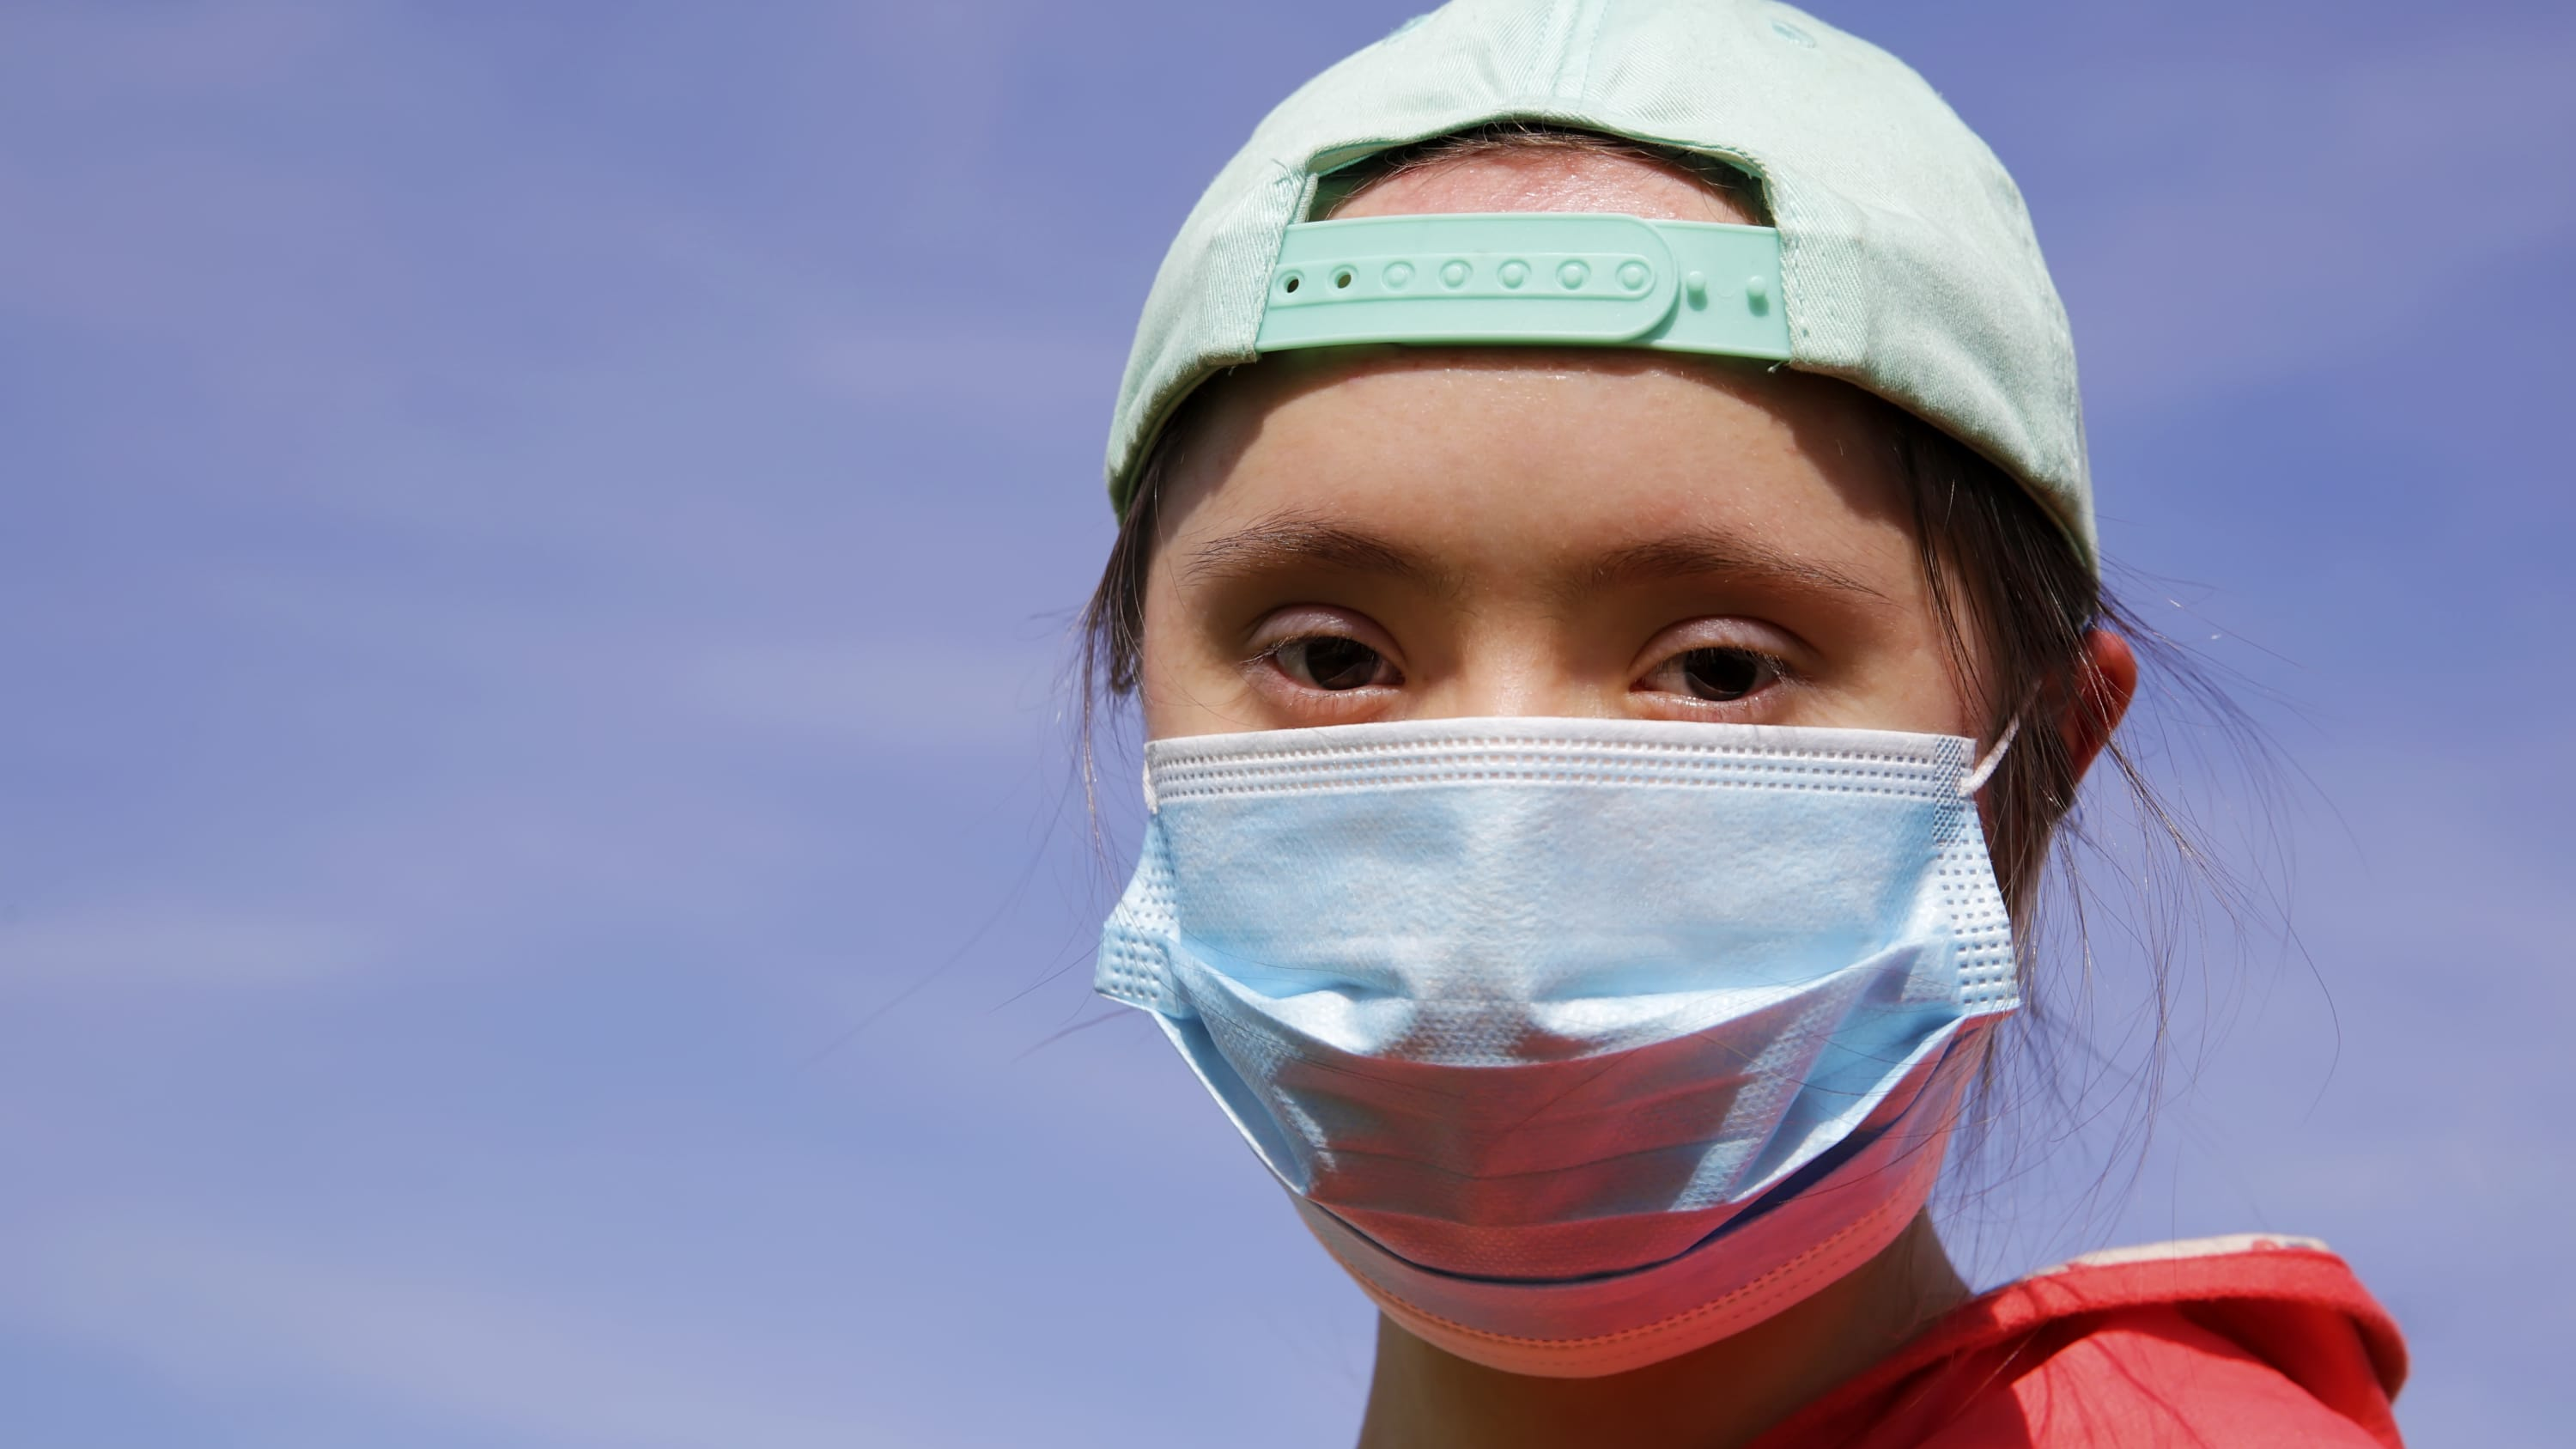 young girl with Down syndrome wearing a mask to protect against COVID-19